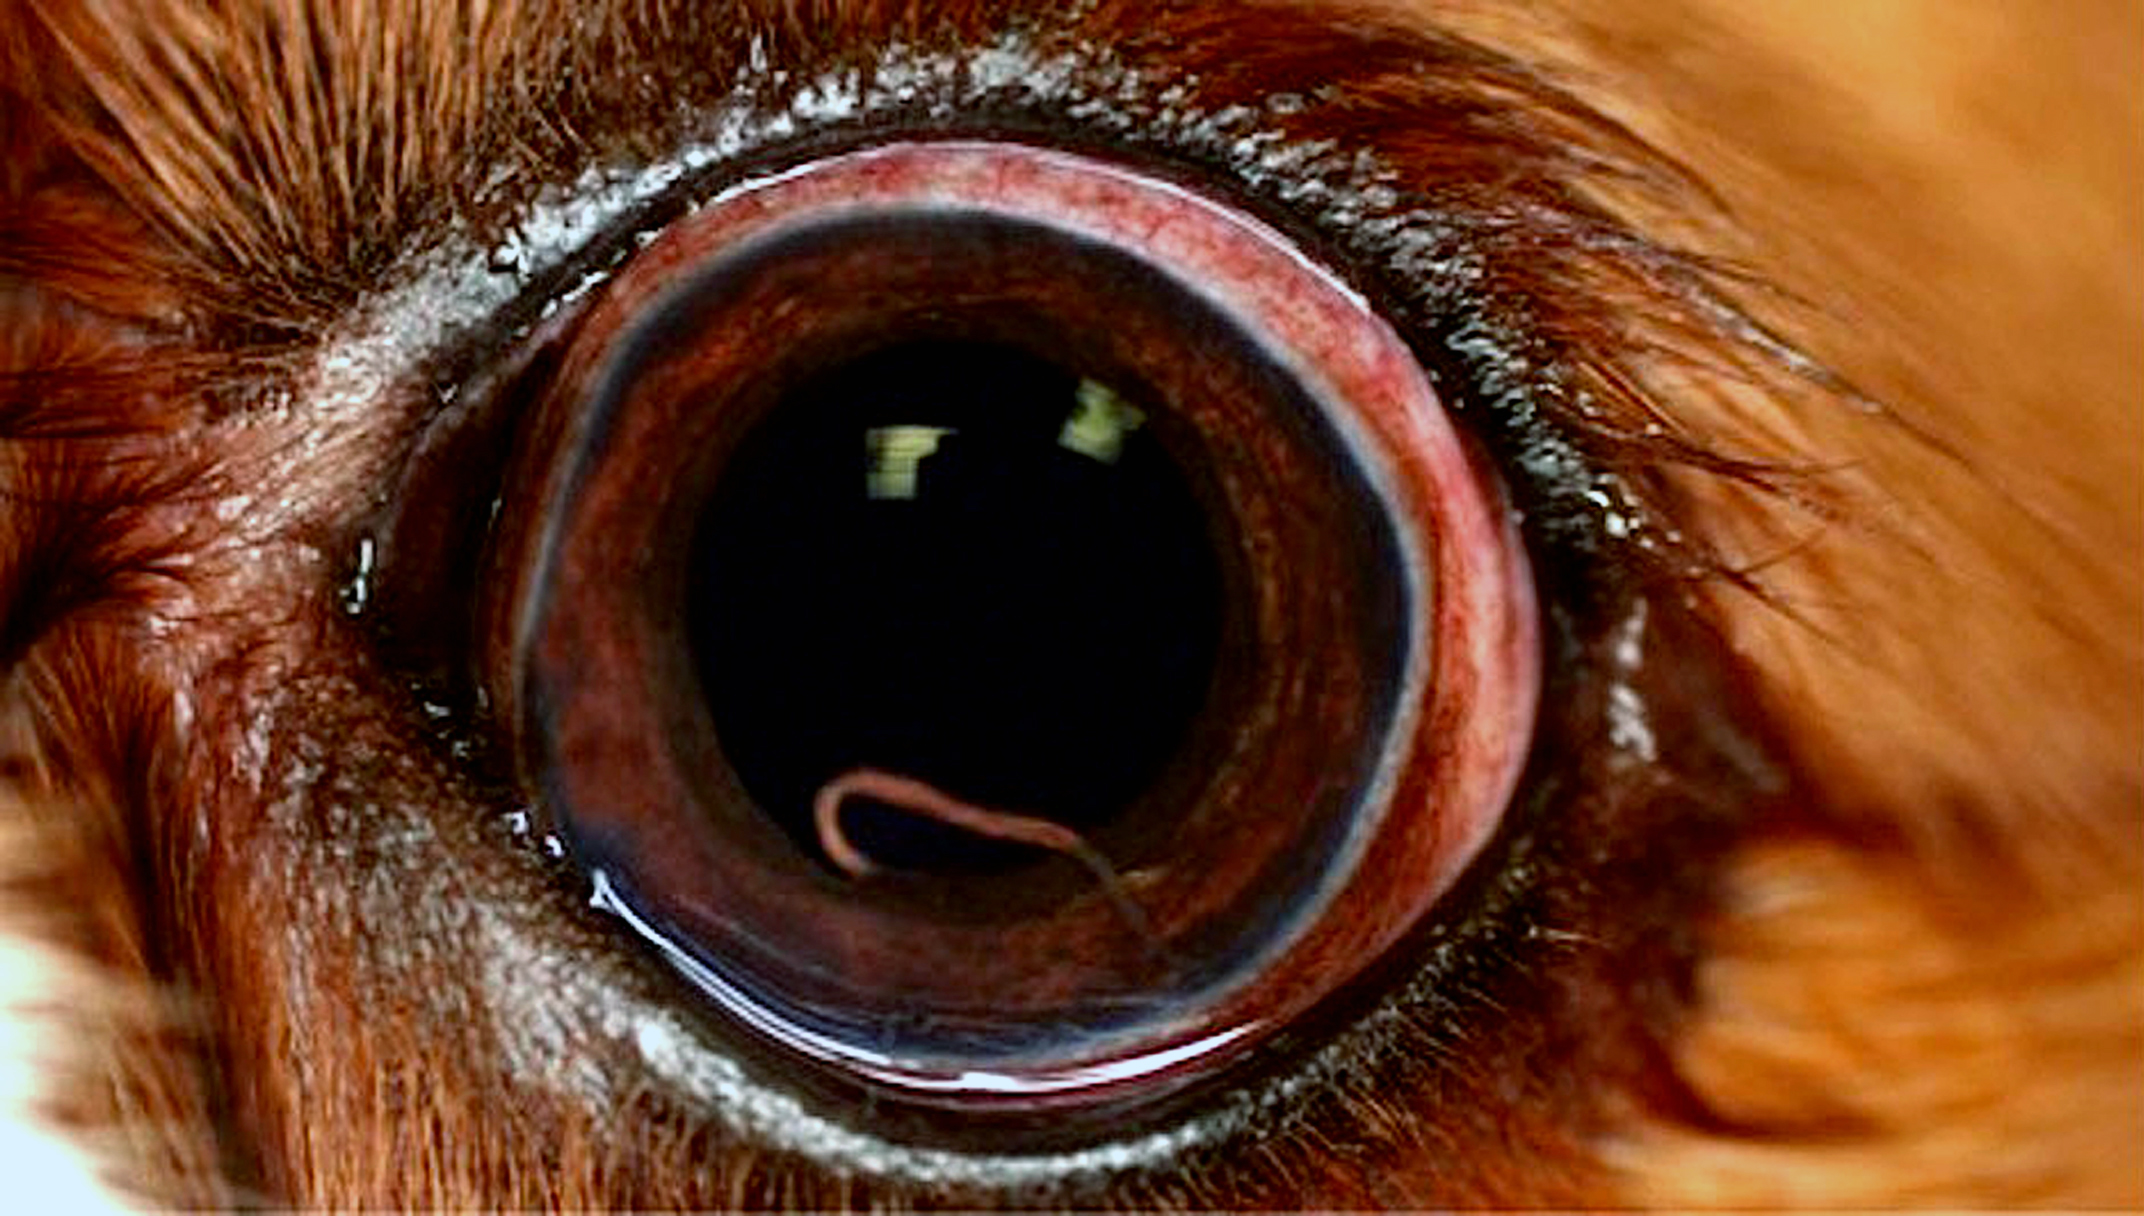 Angiostrongylus vasorum in the eye of a dog. Photo credit: Vito Collela, University of Bari, Italy.